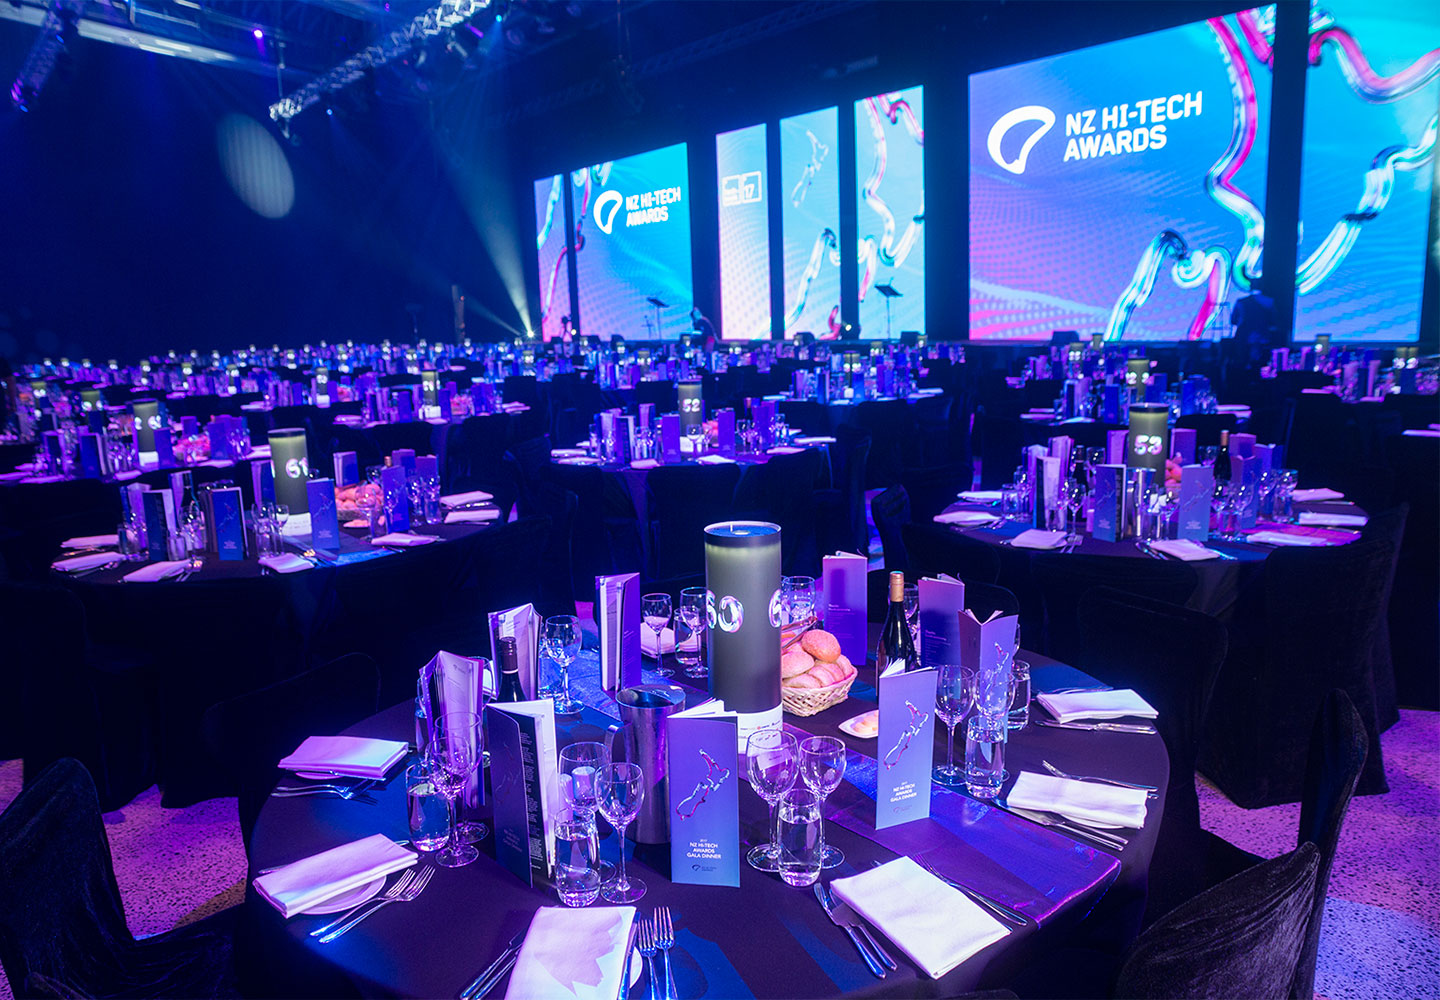 New Zealand Hi-Tech Awards 2018